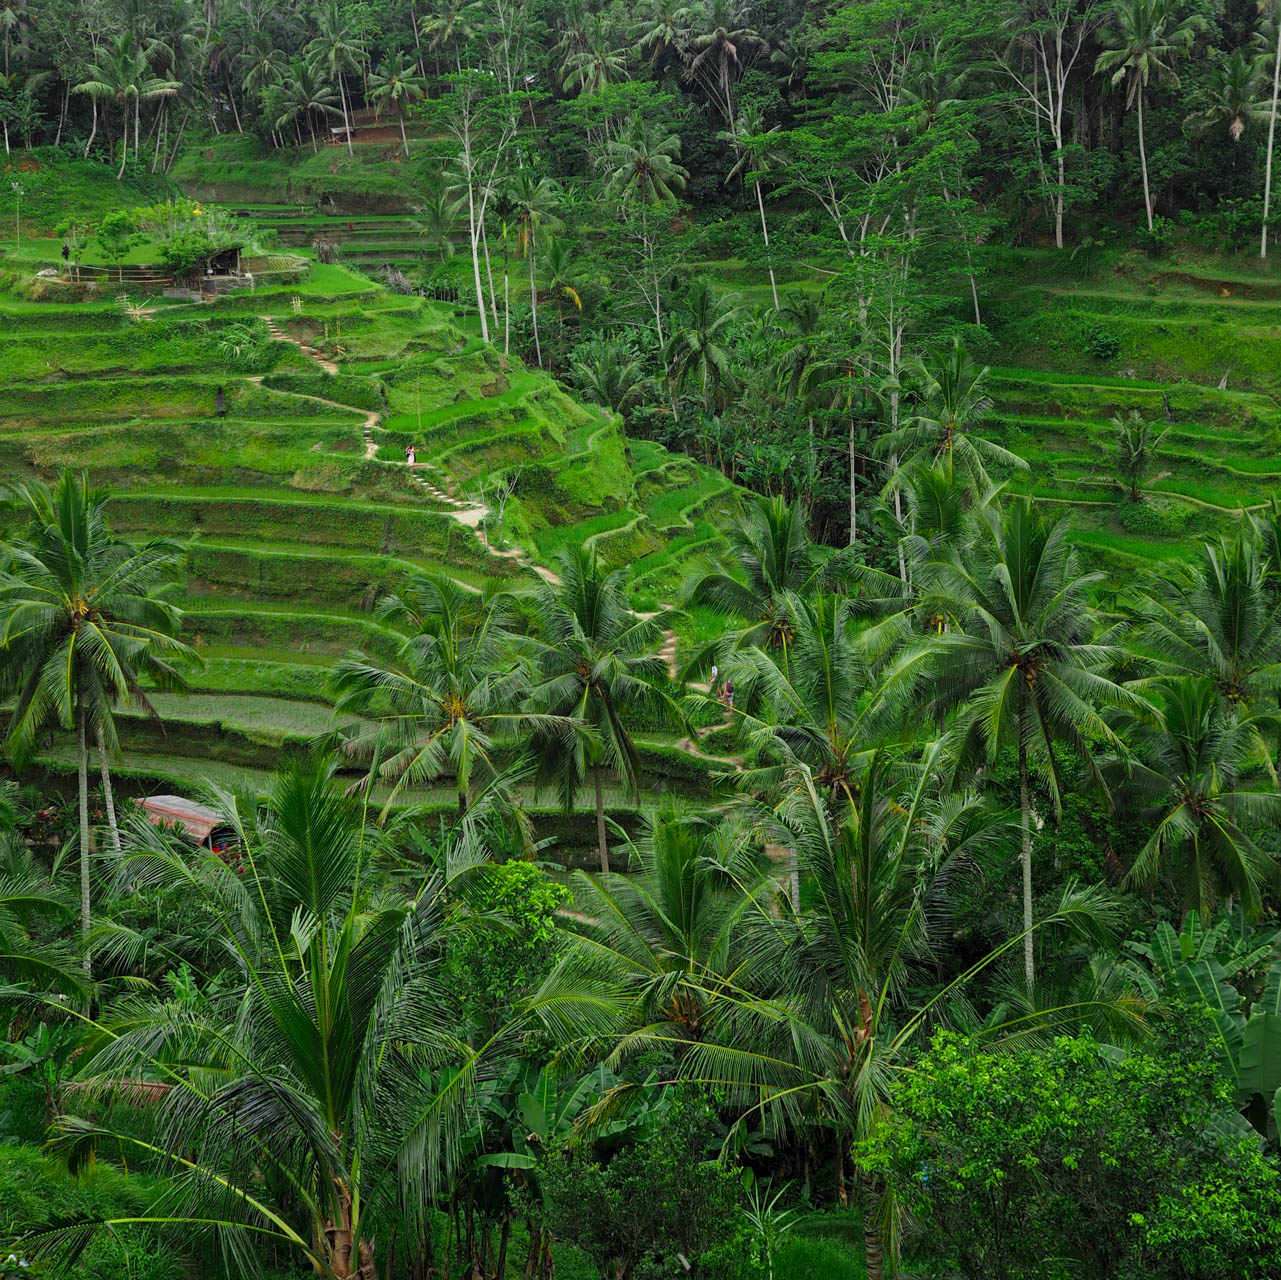 Tegalalang rice terrace bali guide gownsandroses for Tegalalang rice terrace ubud